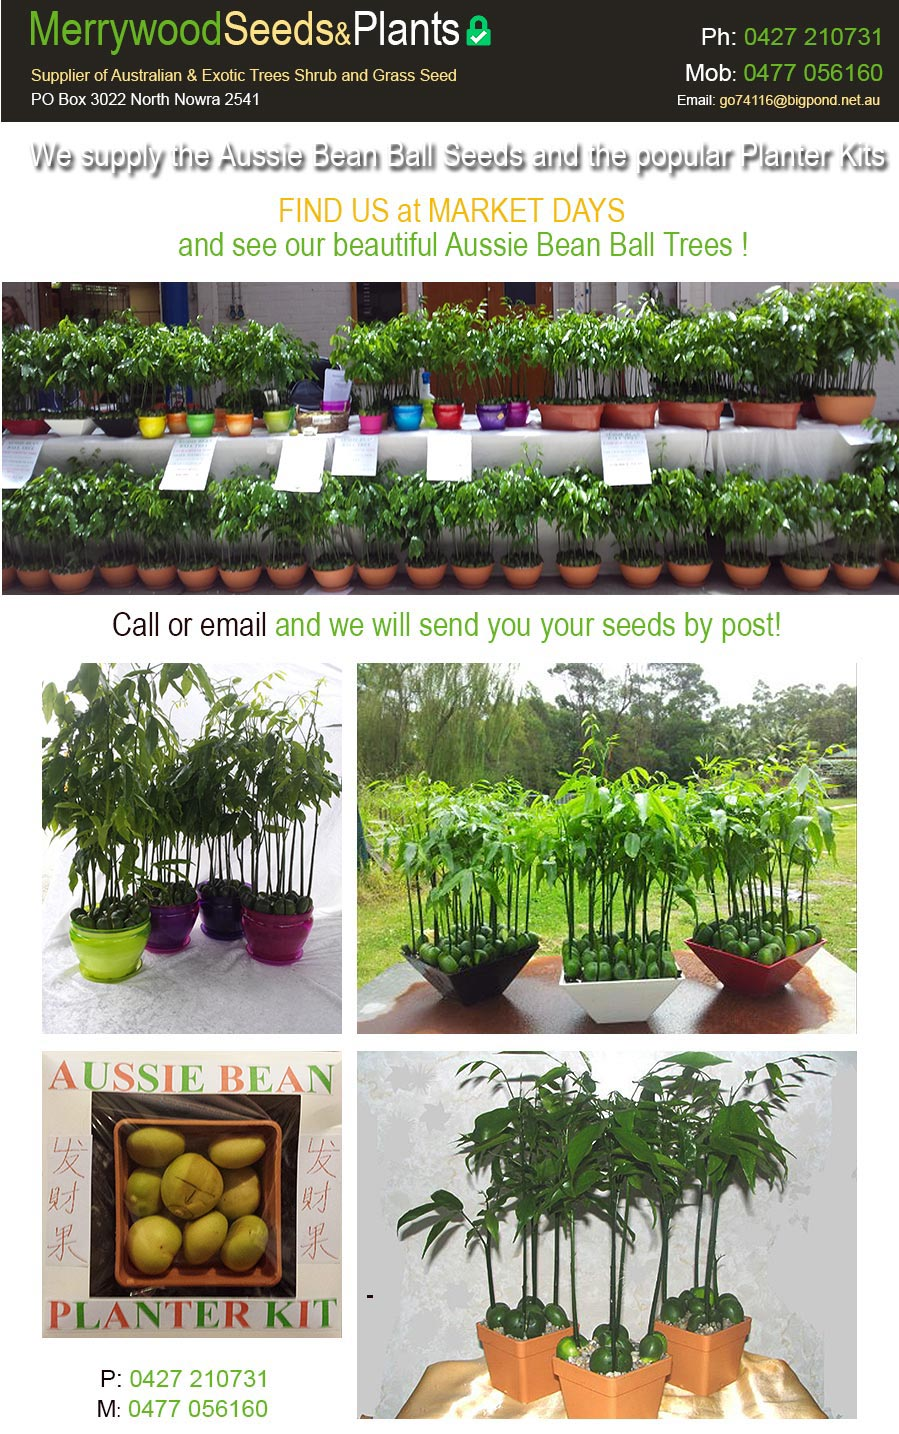 Merrywood Seeds and Plants